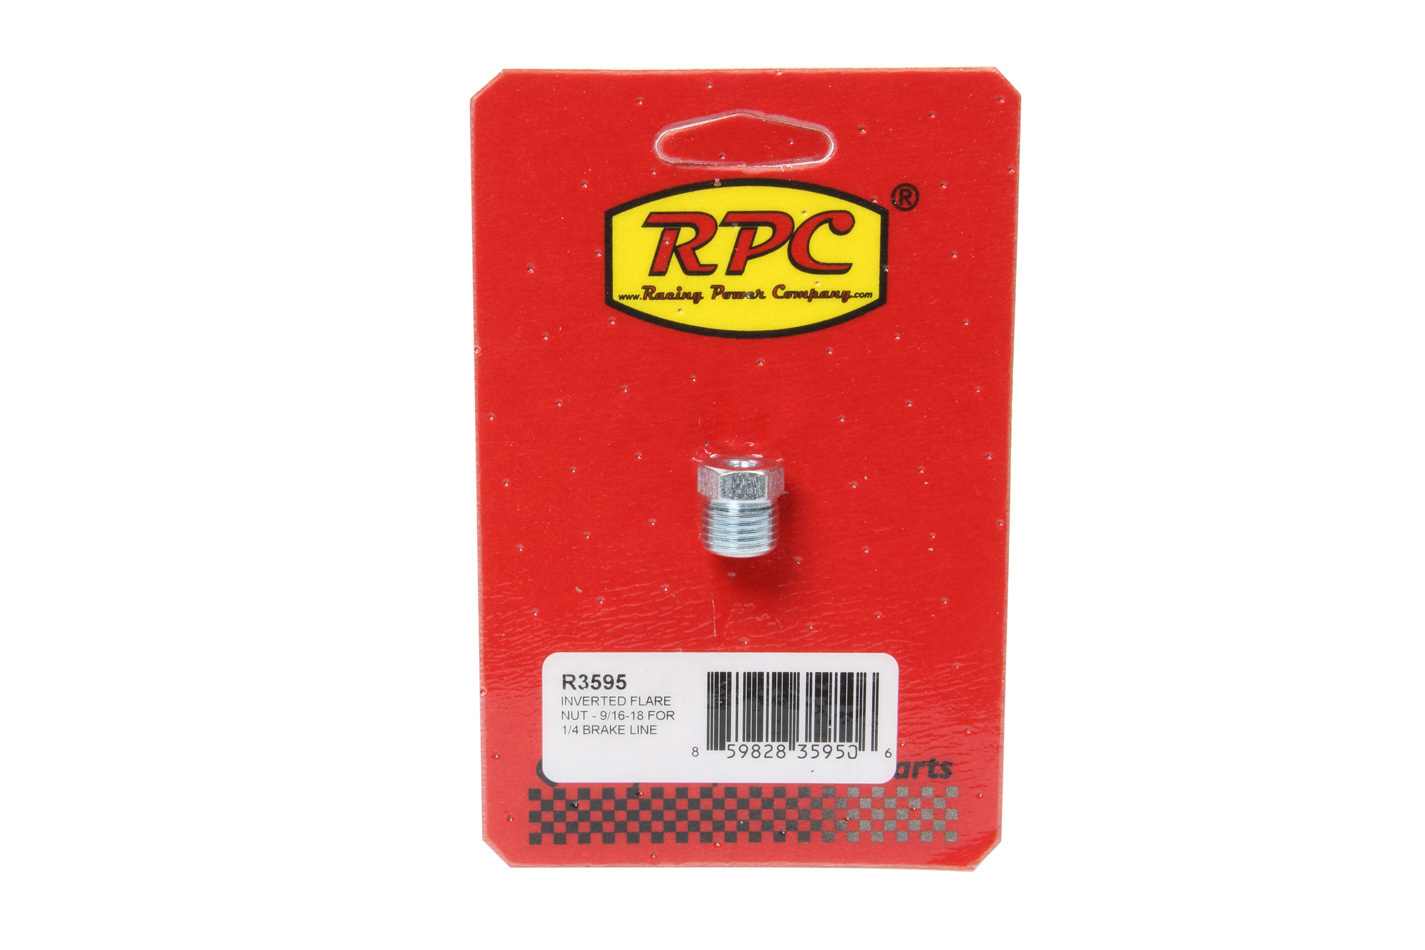 Racing Power Company R3595 Fitting, Flare Nut, 9/16-18 in Inverted Flare Male, Steel, Zinc Oxide, 1/4 in Hardline, Each